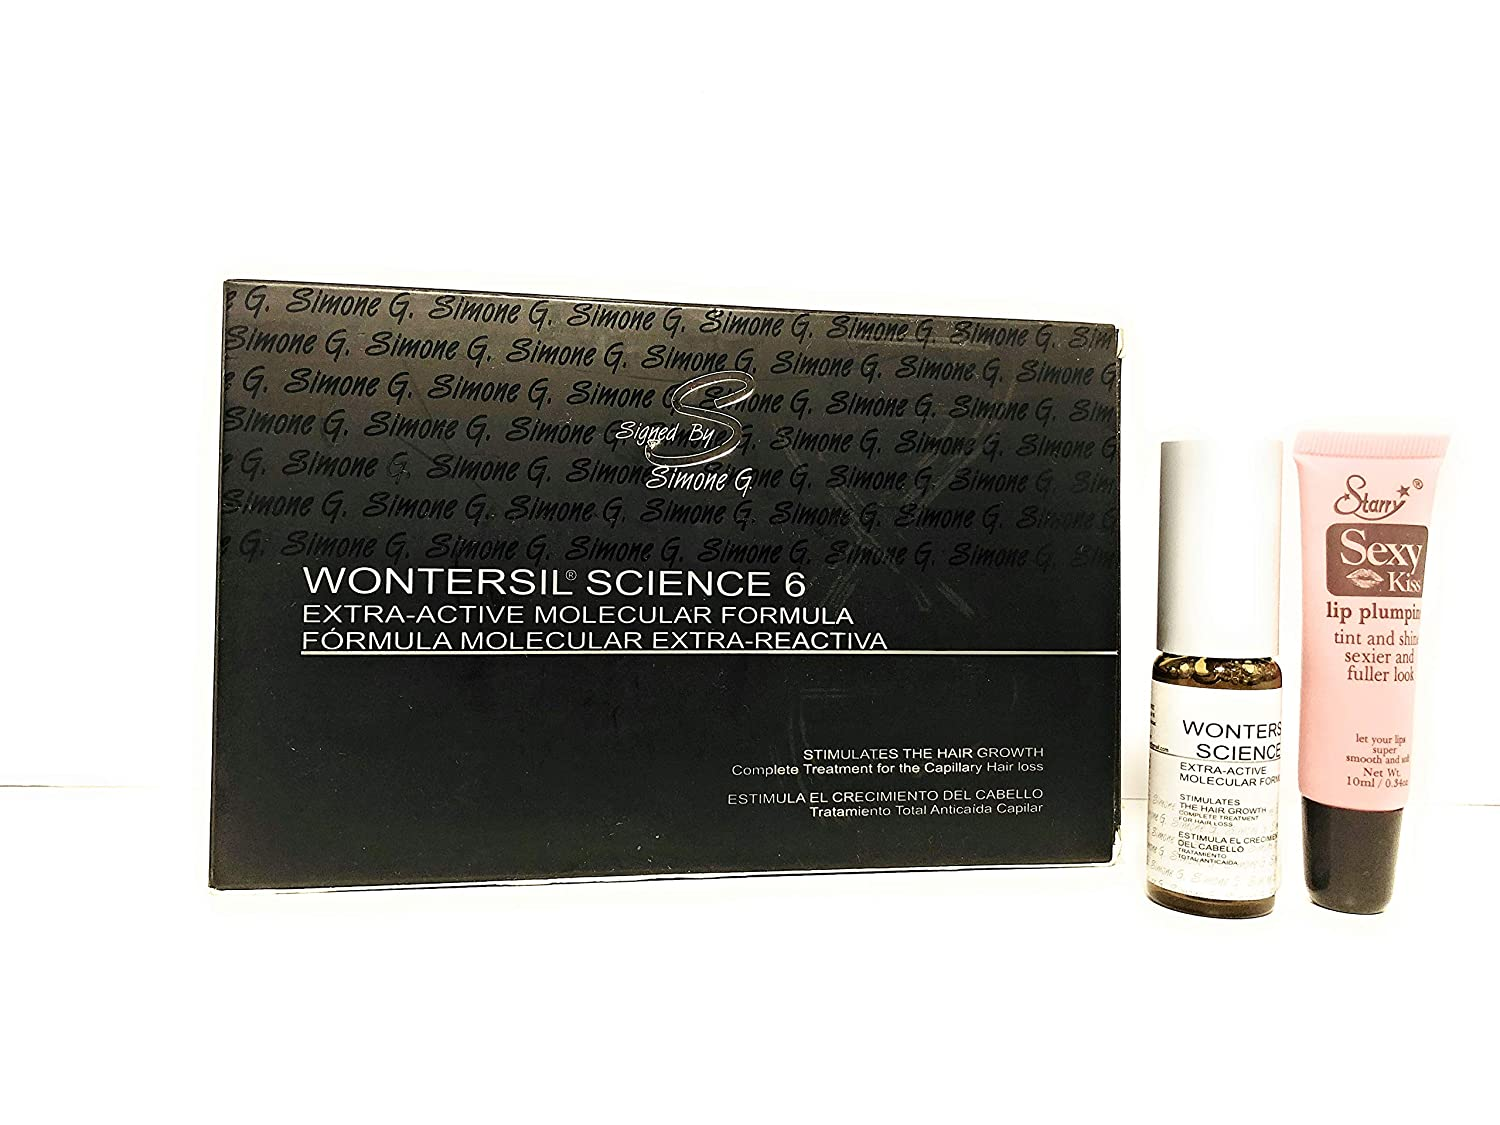 Amazon.com : Signed By Simone G Wontersil Science 6 for Hair Growth 6 Vials : Hair Regrowth Treatments : Beauty